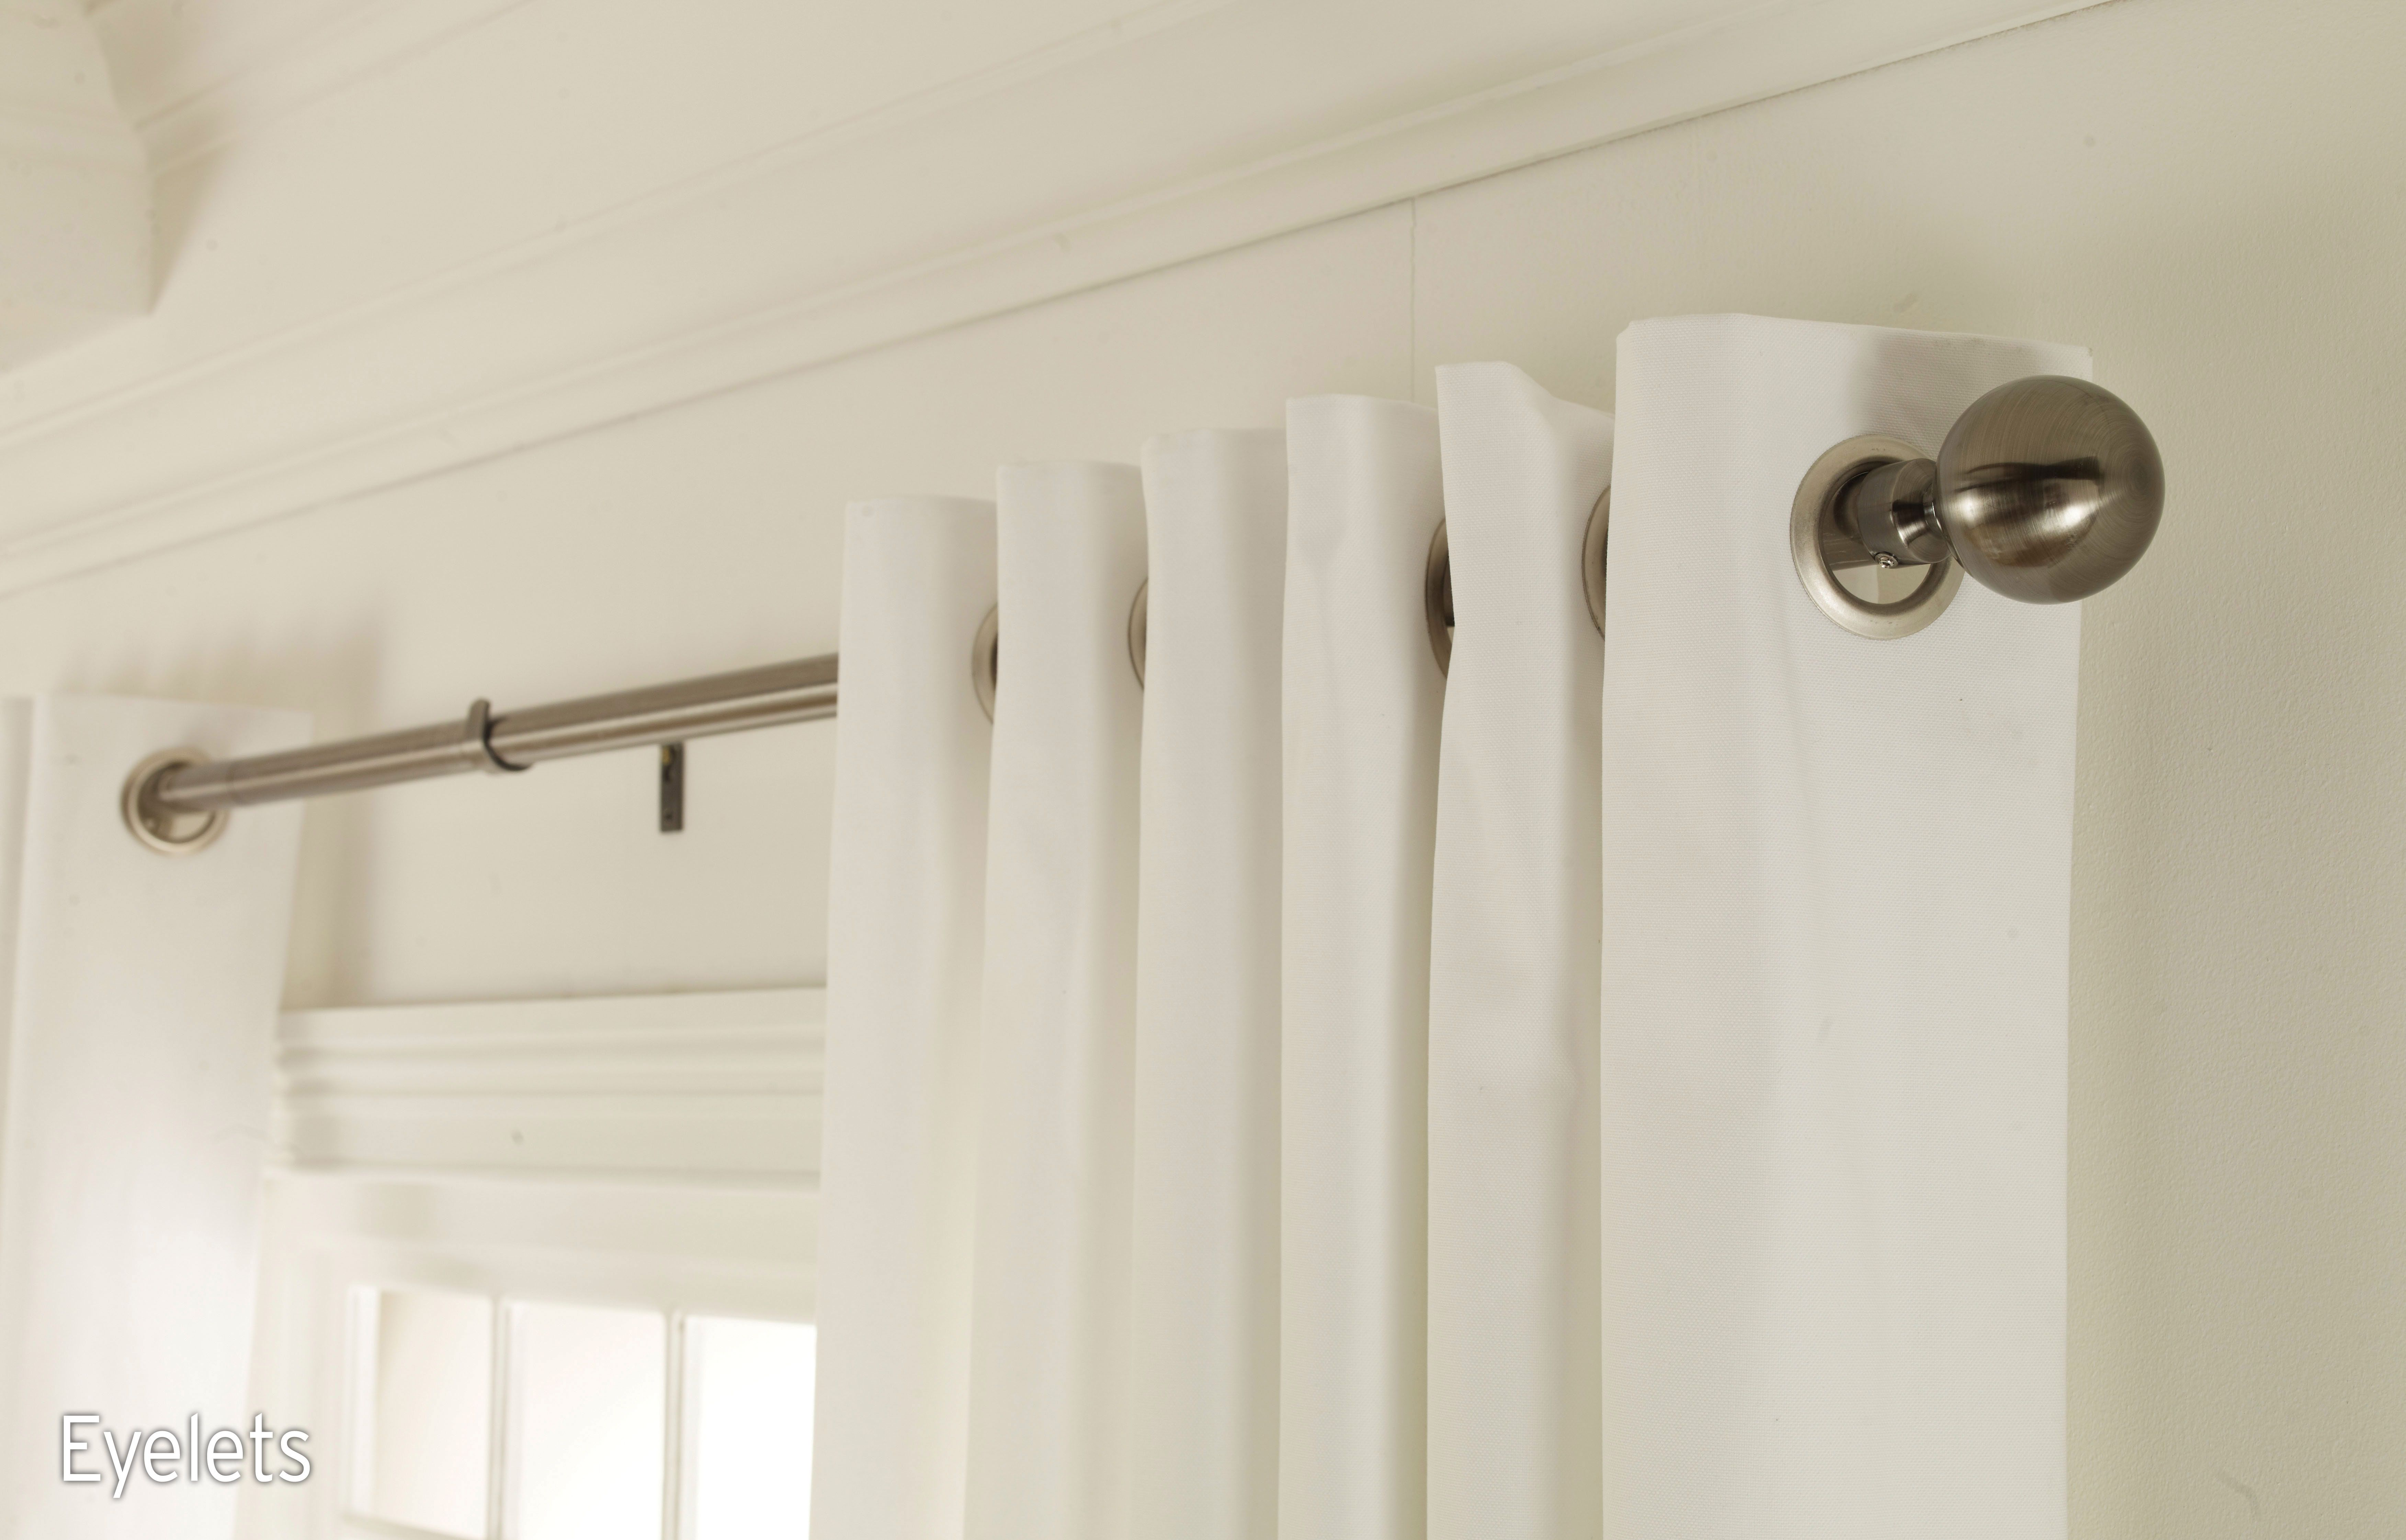 View our Eyelet curtains from Hillarys  available in a wide range of     Customise your curtains with eyelets for neat contemporary folds  Book an  in home appointment to see our curtain designs and accessories